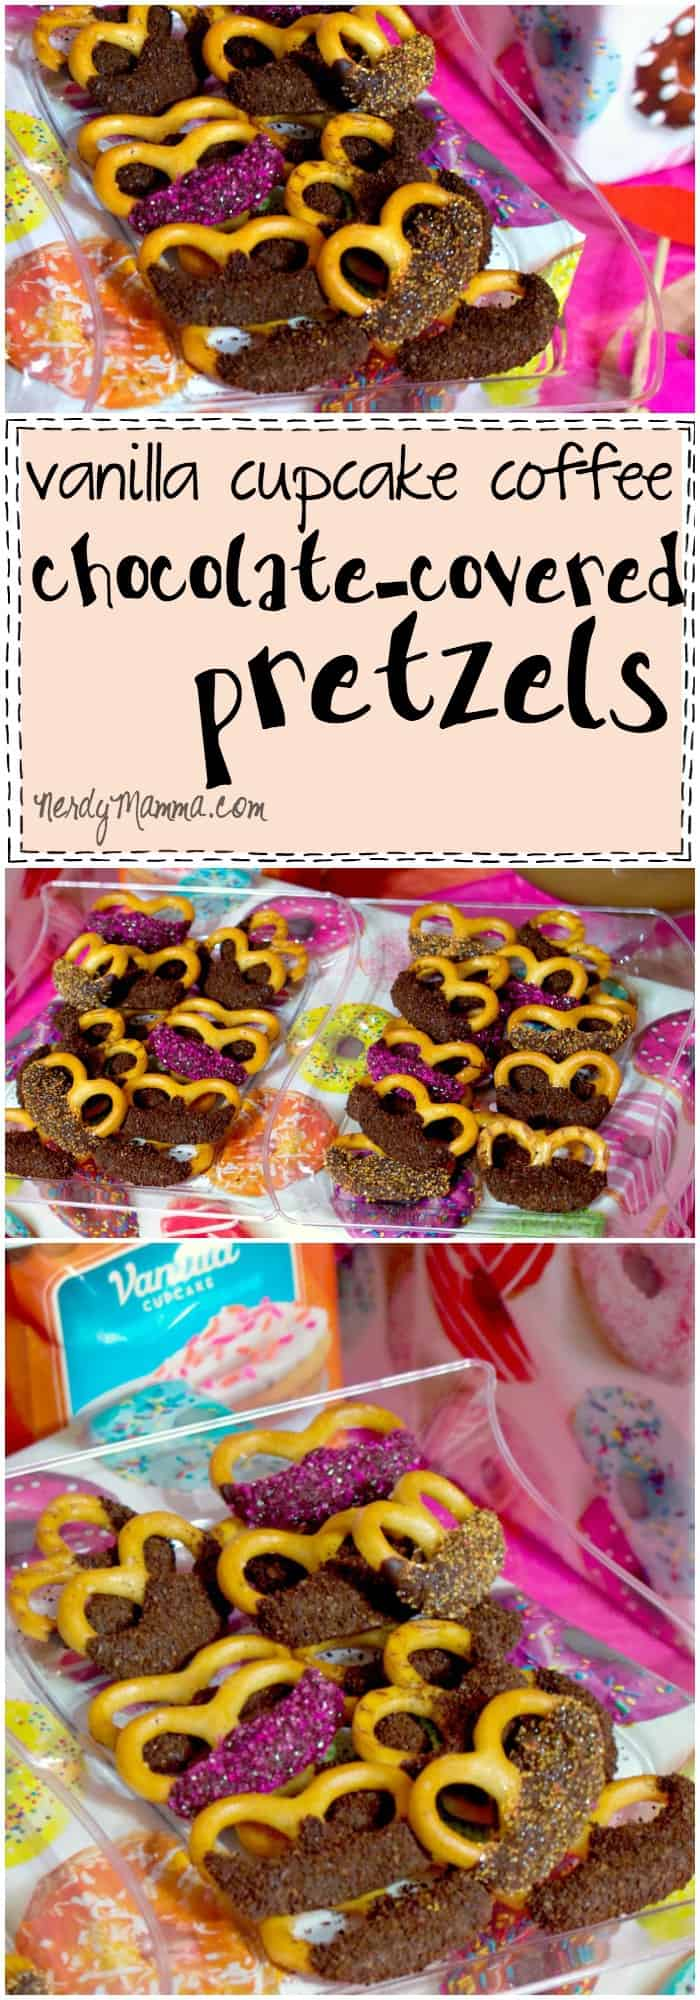 This recipe for Vanilla Cupcake Coffee Chocolate-Covered Pretzels is INSANE. I love the idea of putting coffee on my pretzels. Pure. Genius.